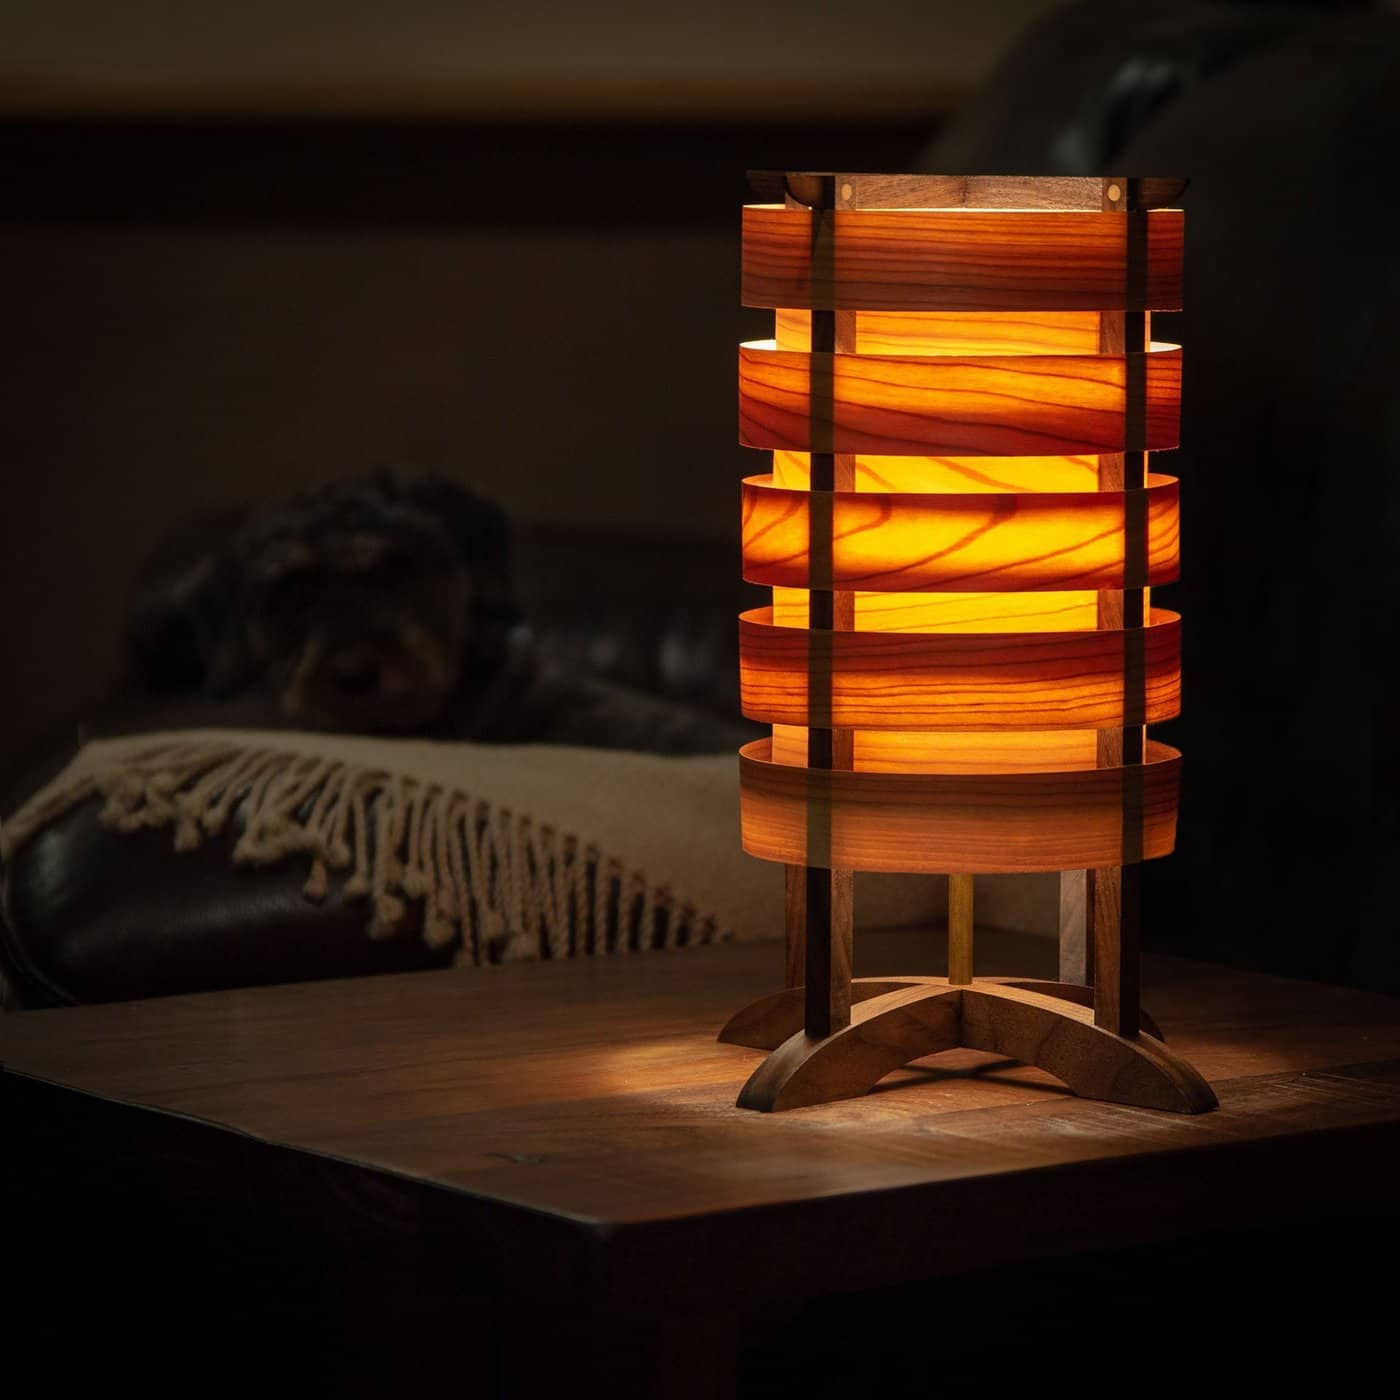 Handmade lamp by David Ryan Scott with all fitted joints. No screws or nails!